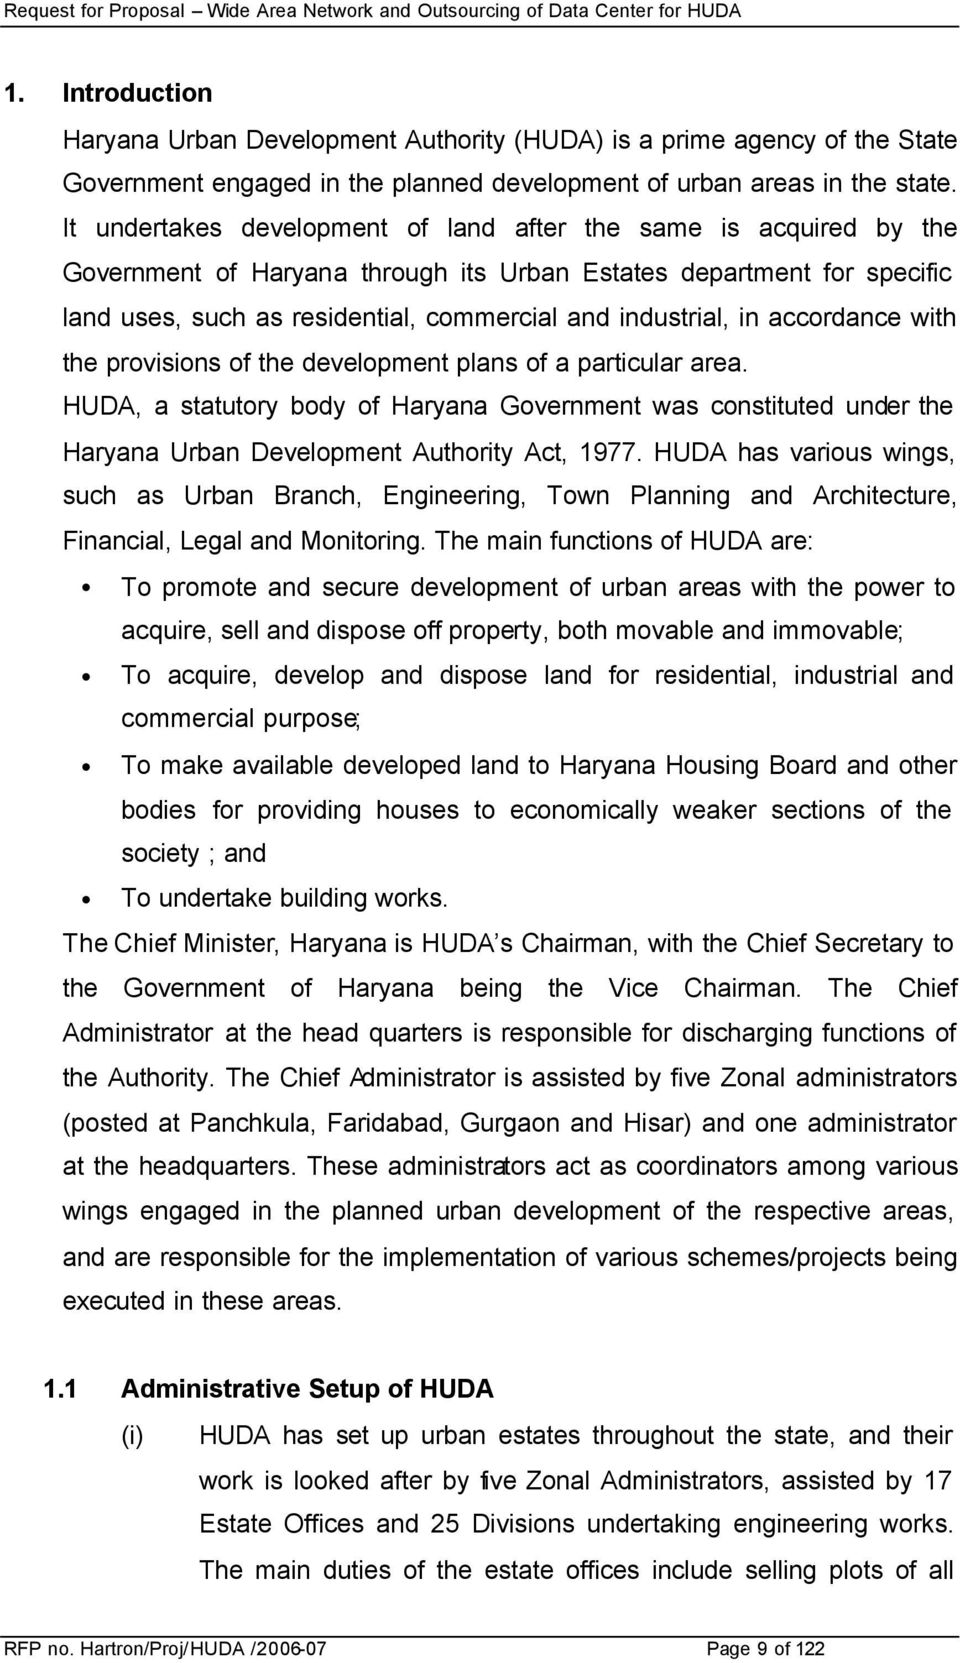 in accordance with the provisions of the development plans of a particular area. HUDA, a statutory body of Haryana Government was constituted under the Haryana Urban Development Authority Act, 1977.